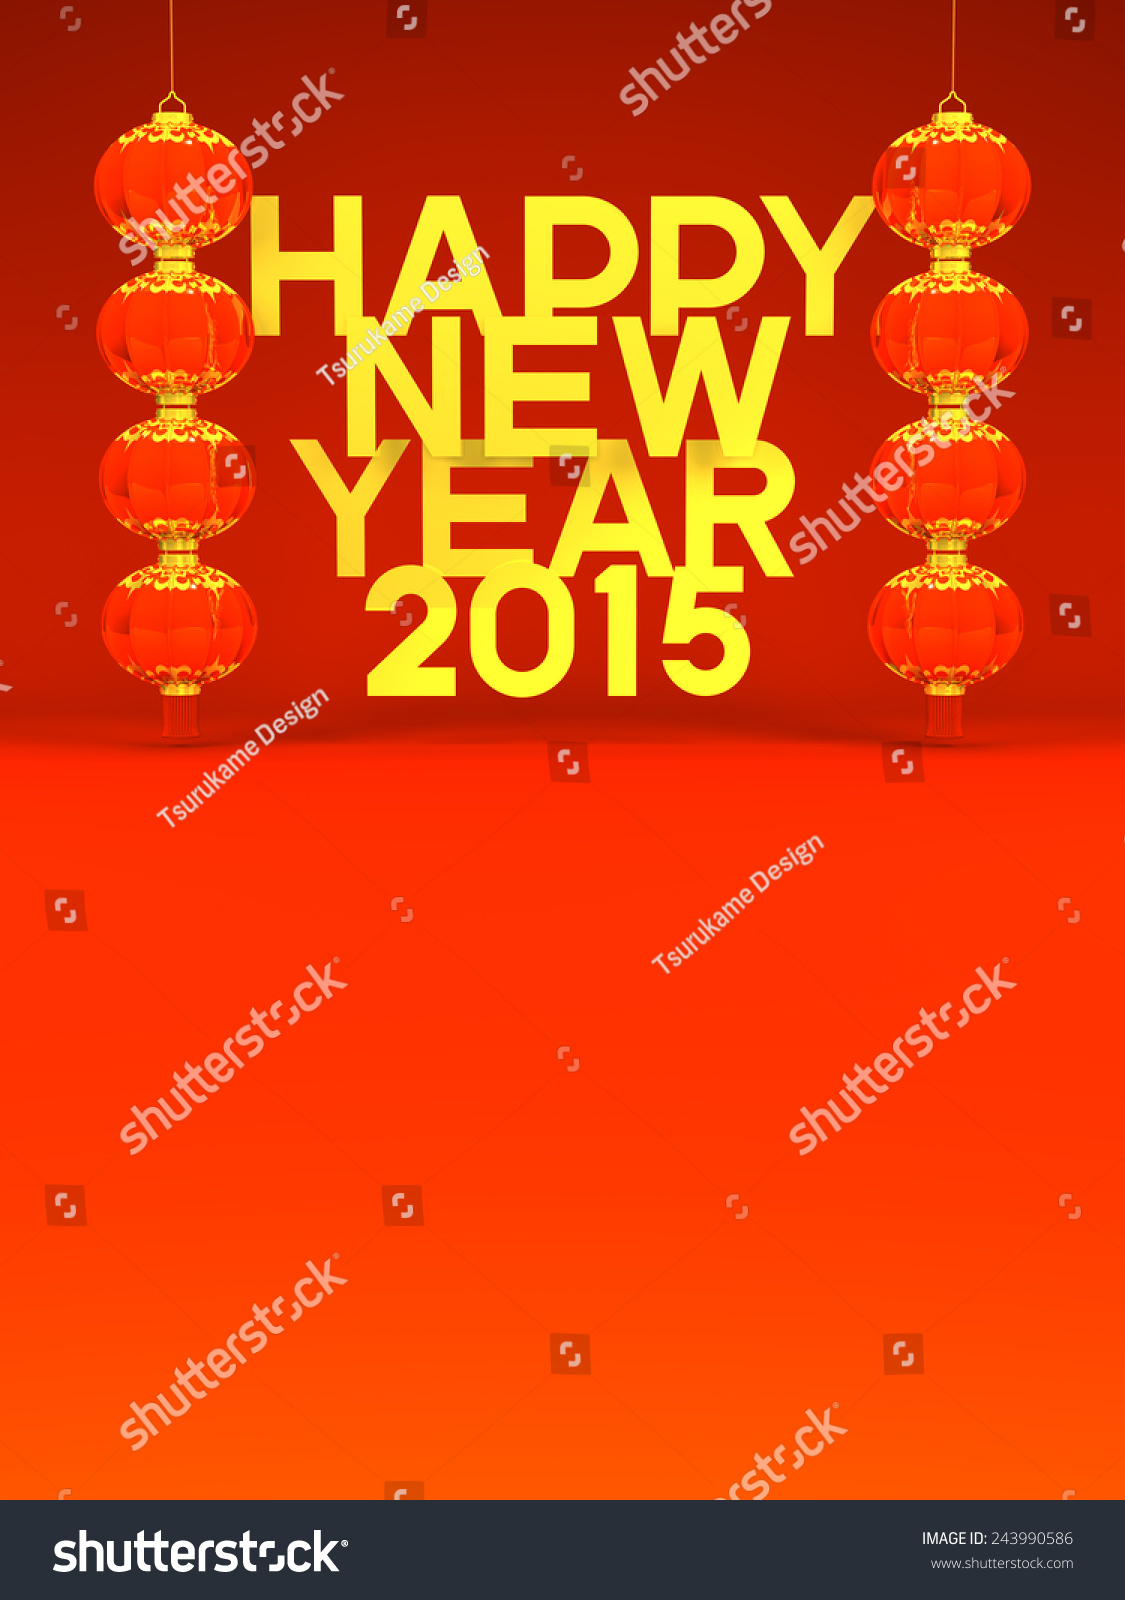 Lunar new years lanterns 2015 greeting stock illustration 243990586 lunar new years lanterns 2015 greeting on red text space 3d render illustration for kristyandbryce Choice Image